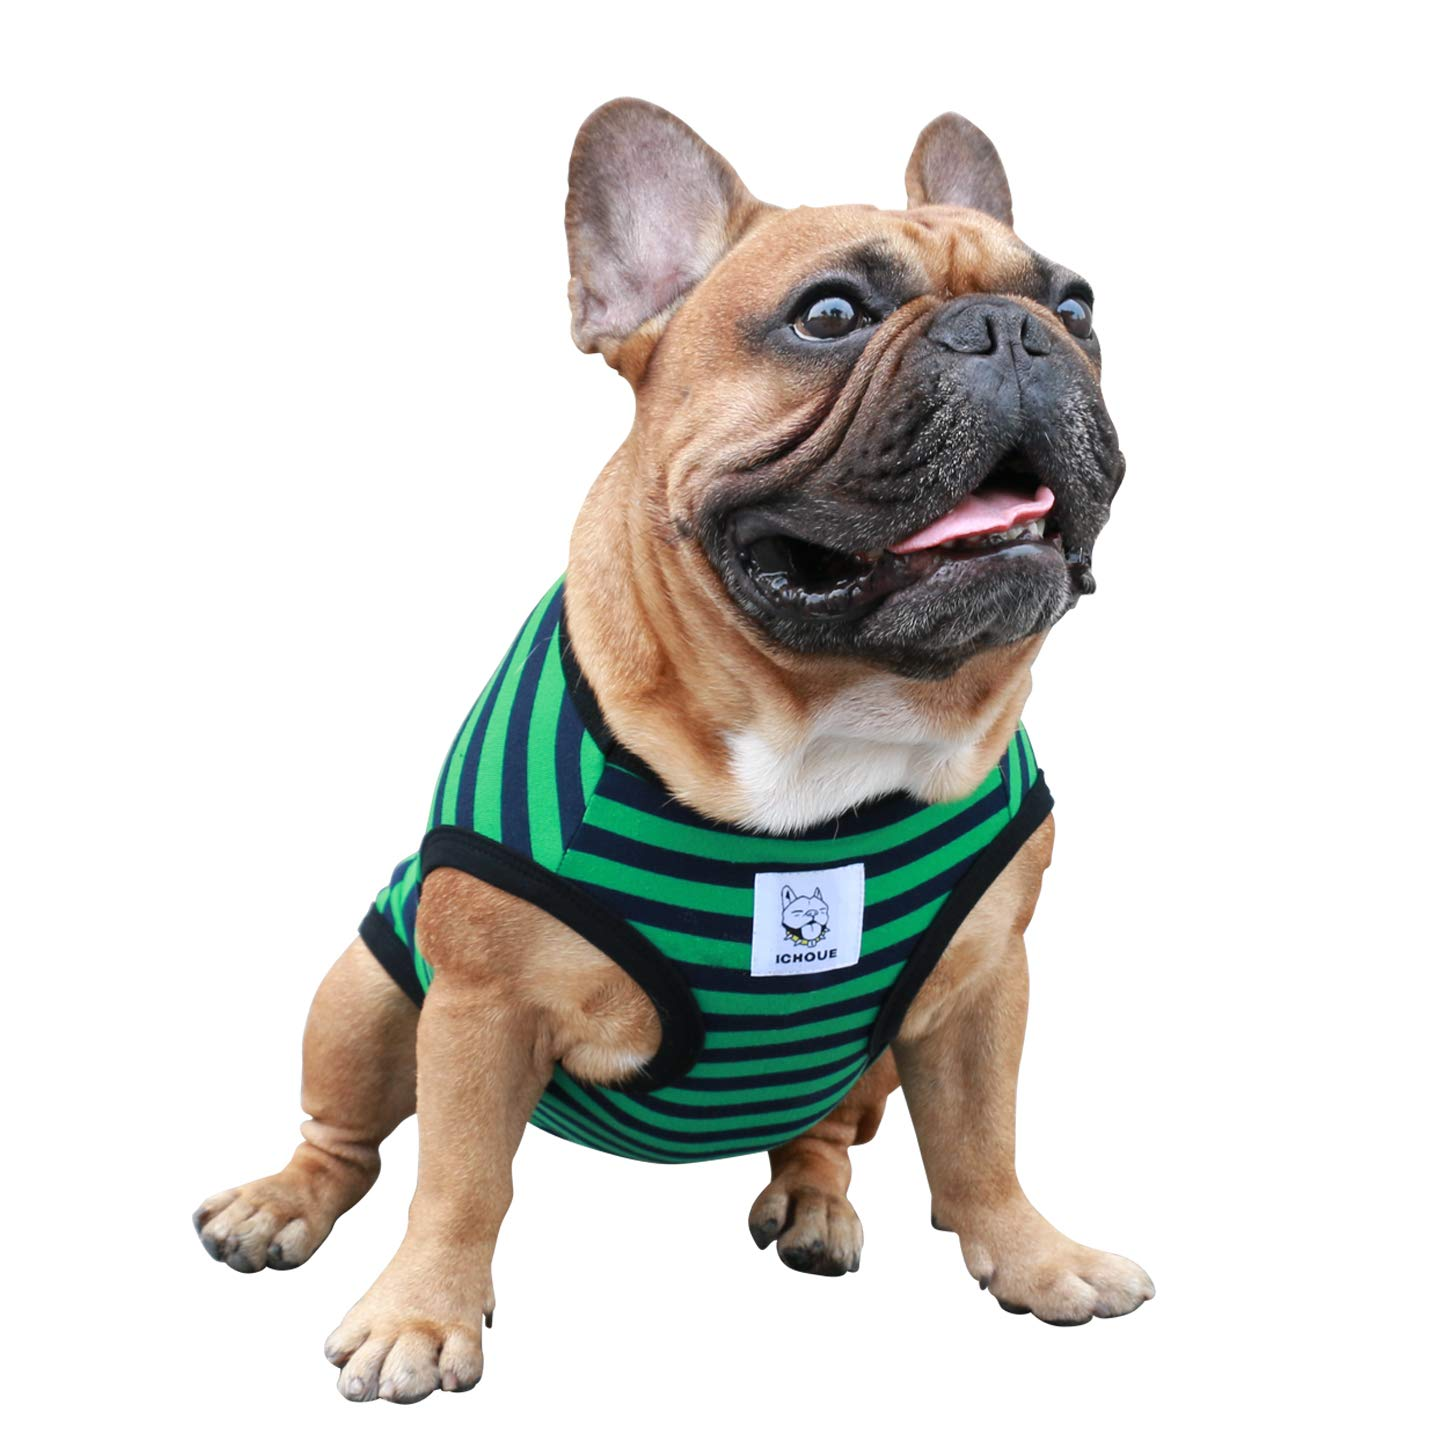 iChoue Dog Clothes Vest Tee Shirt for French Bulldog Pug Boston Terrier Frenchie- L Green Black Stripe by iChoue